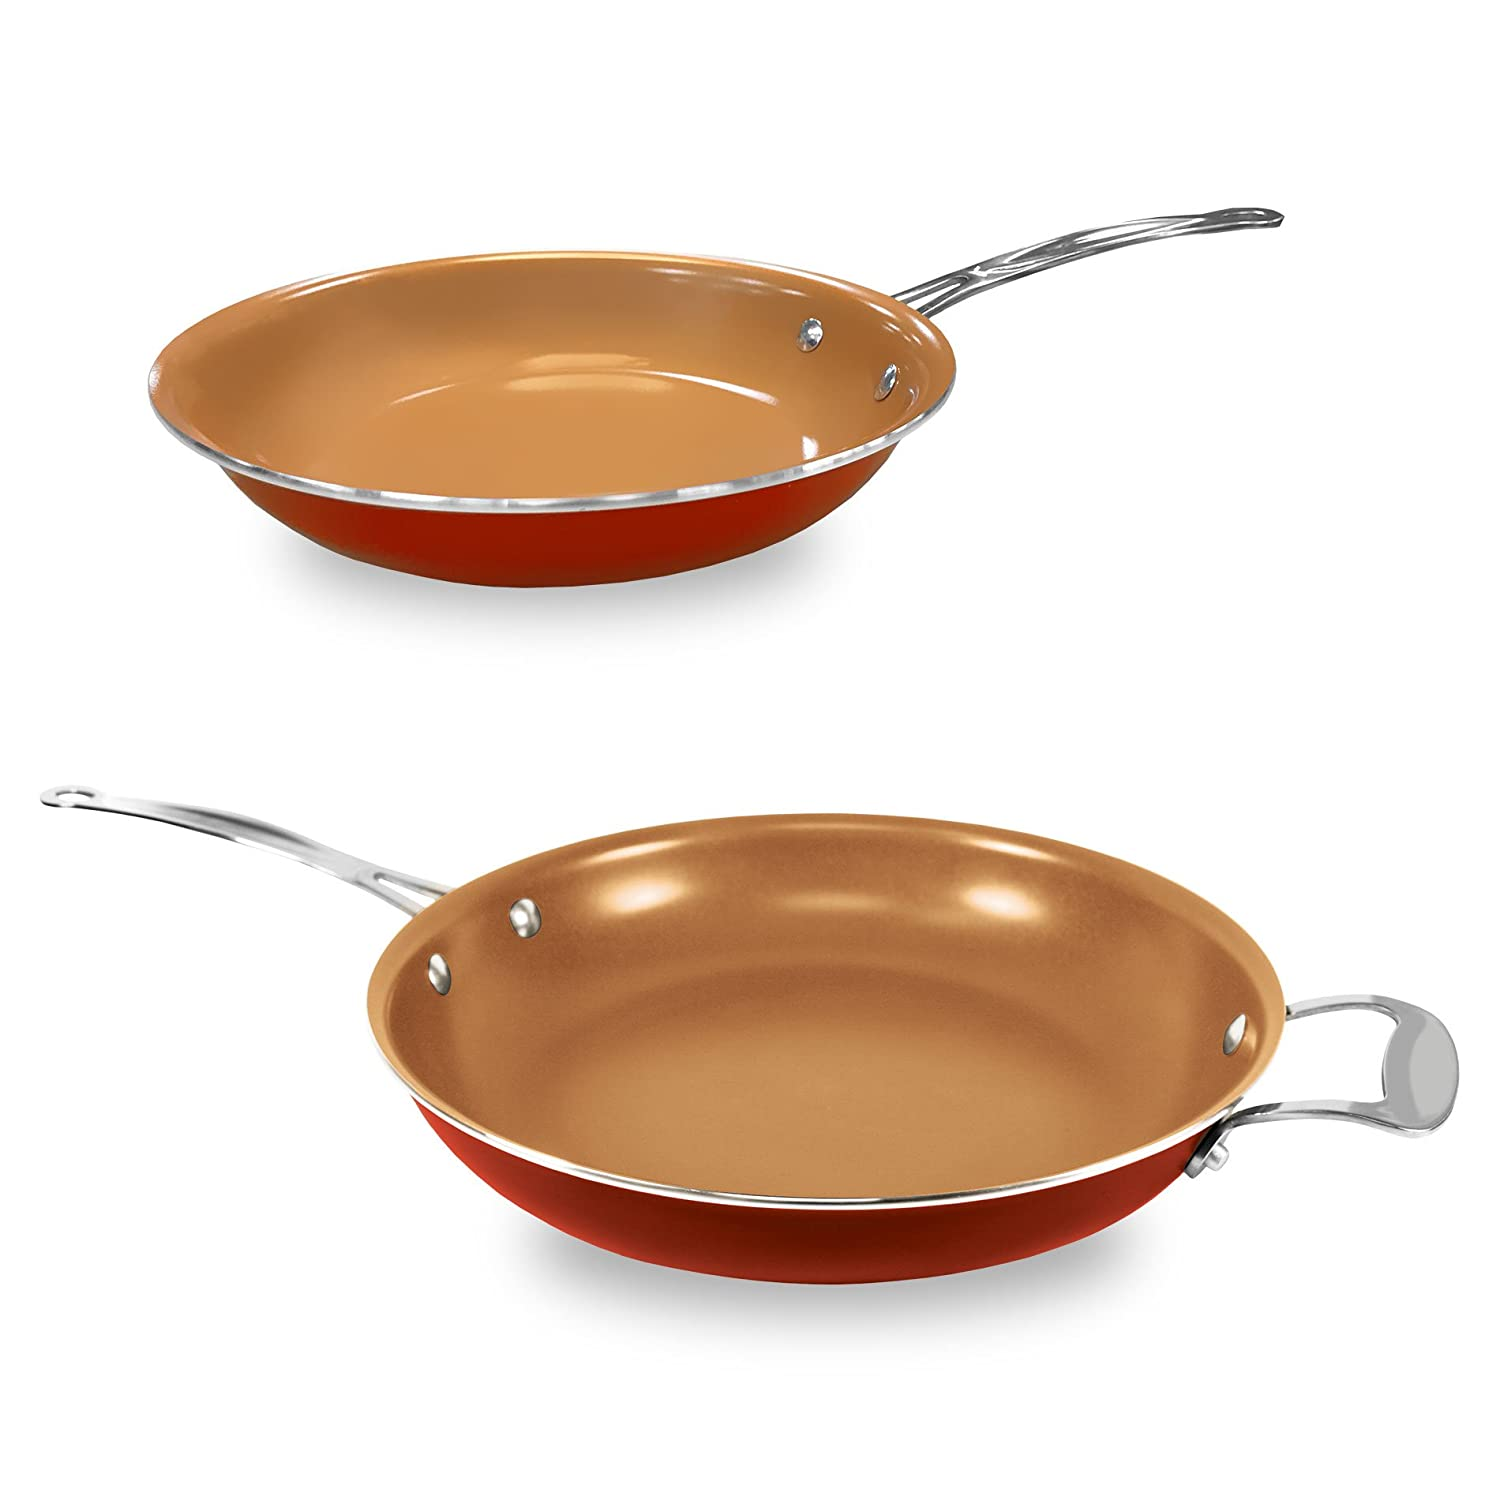 10 Inch Ceramic Fry Pan With Lid